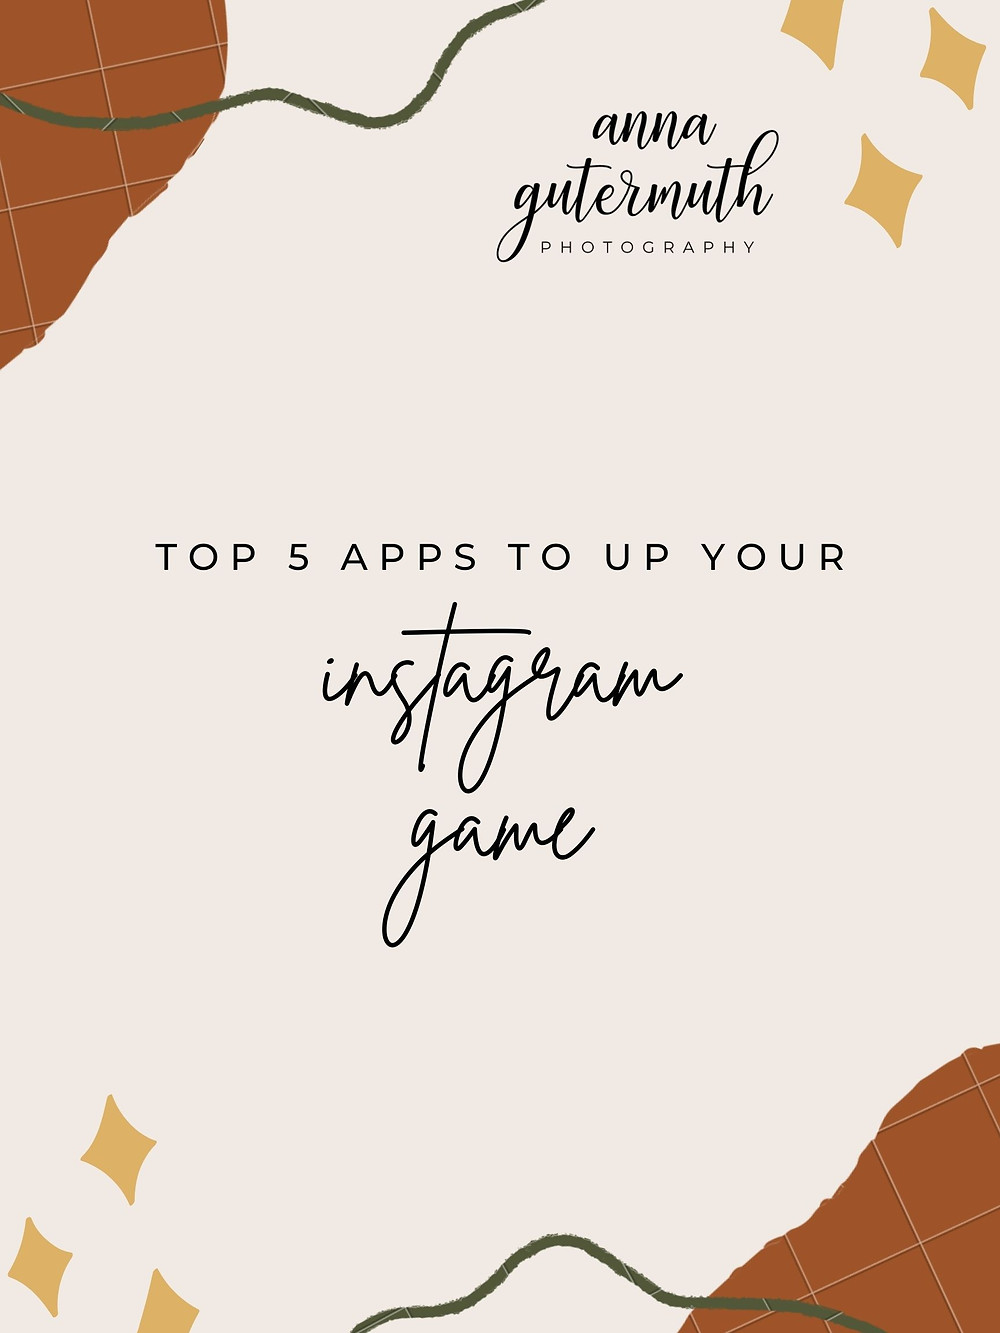 The Top Five 5 Must Have Apps for Instagram by Anna Gutermuth Photography